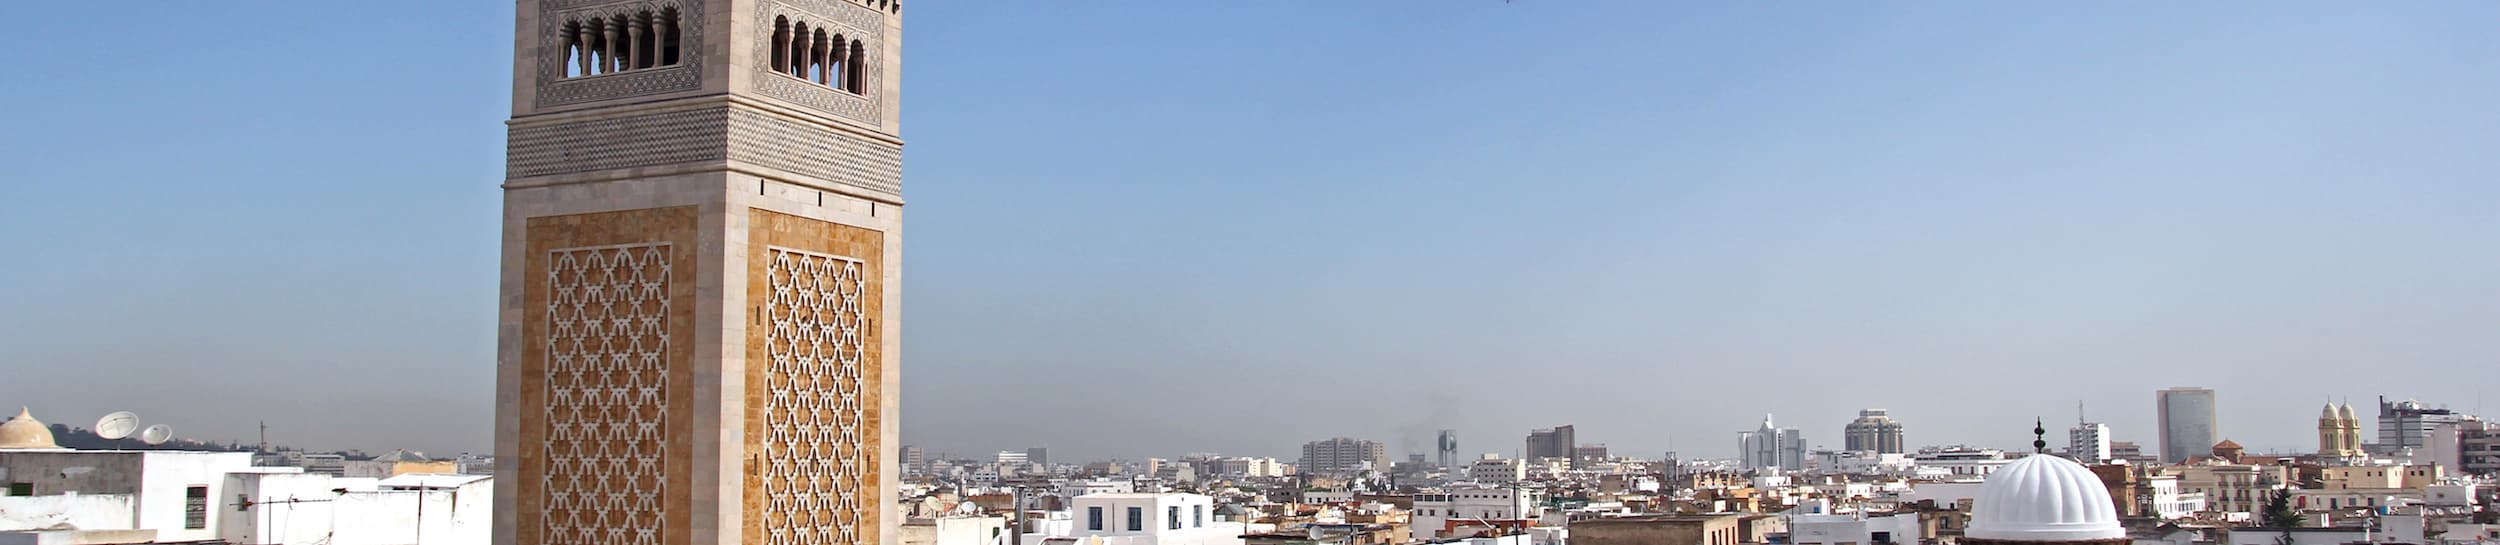 Pictured: skyline of Tunis